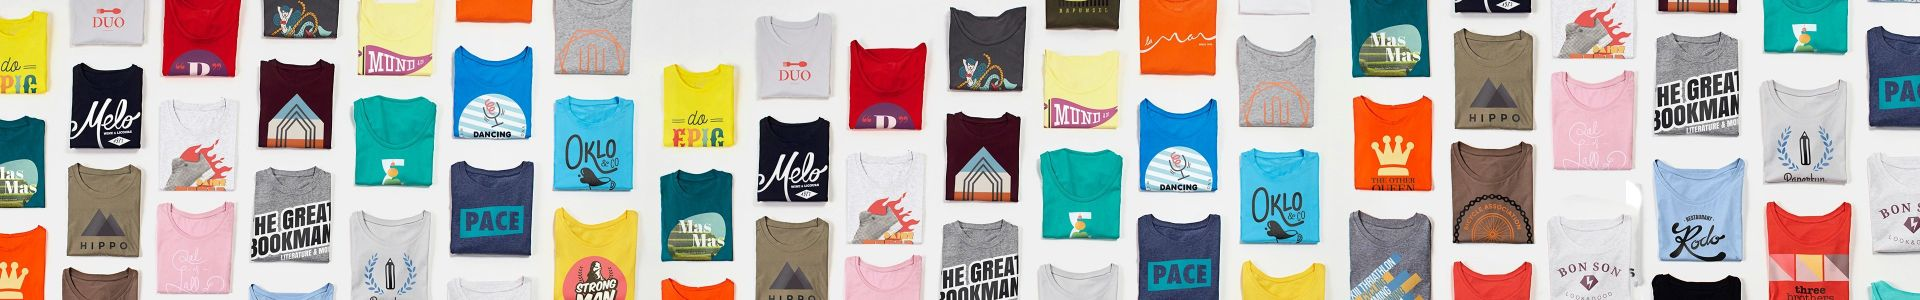 Merchandise t-shirts for your brand | Camaloon